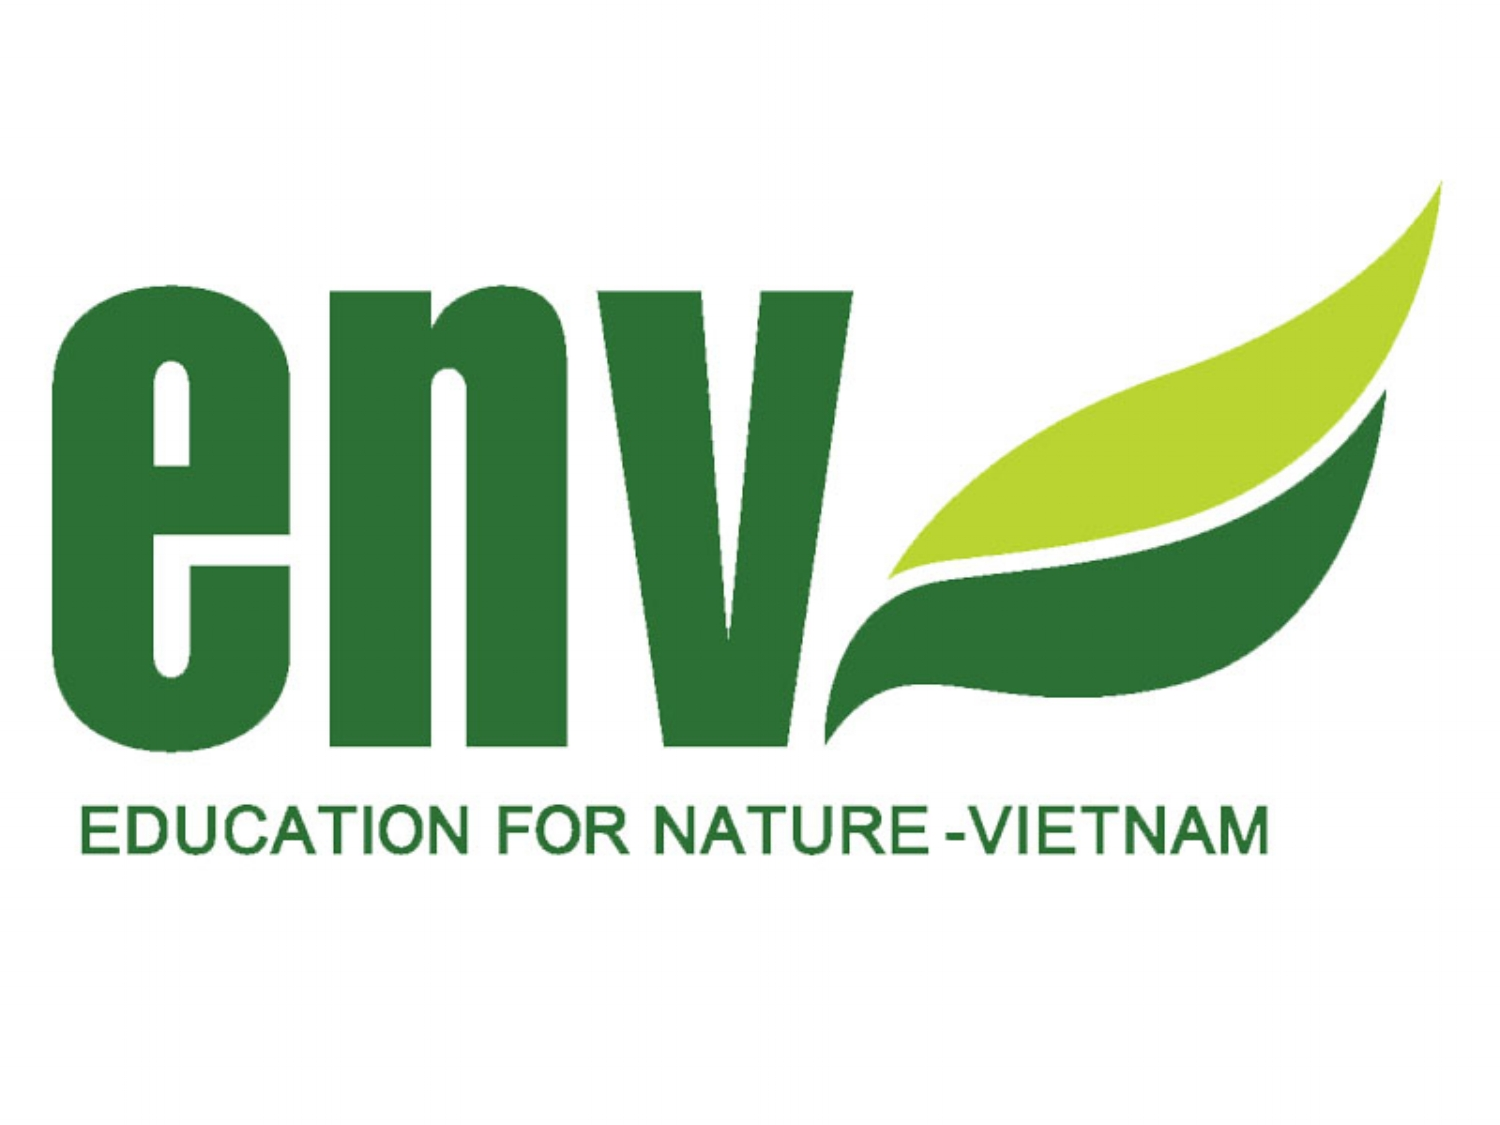 Education for Nature Vietnam